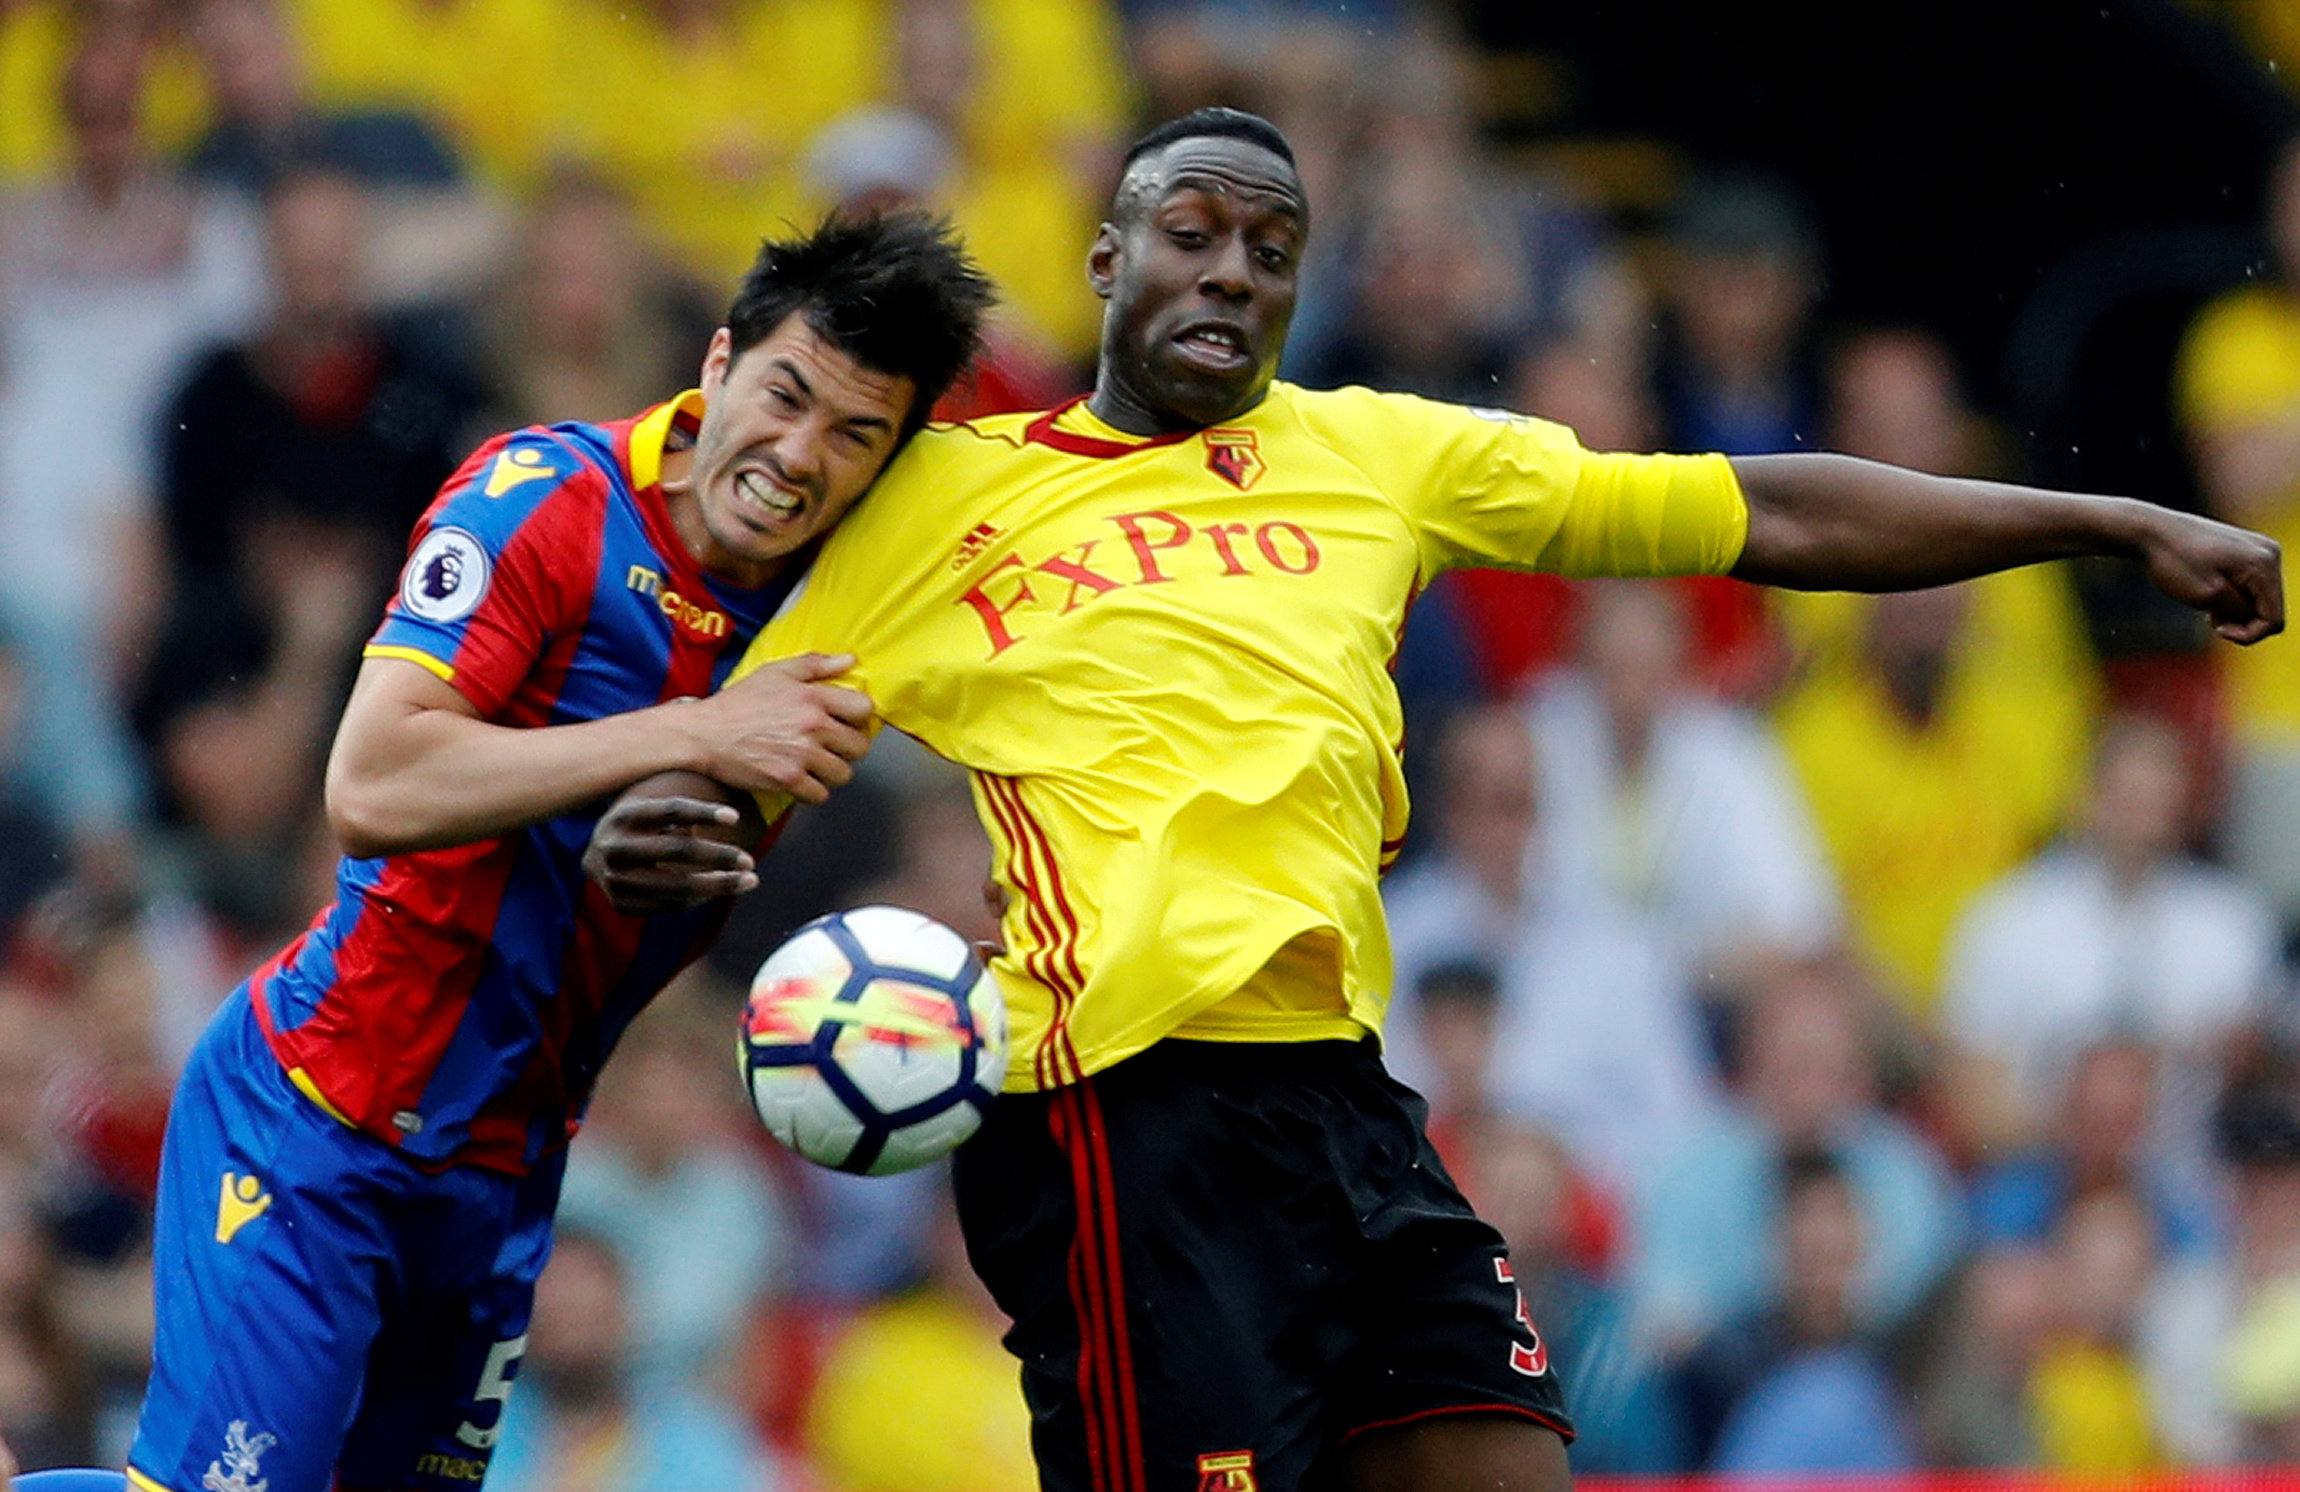 Stefano Okaka has had limited game time this season. Picture: Action Images